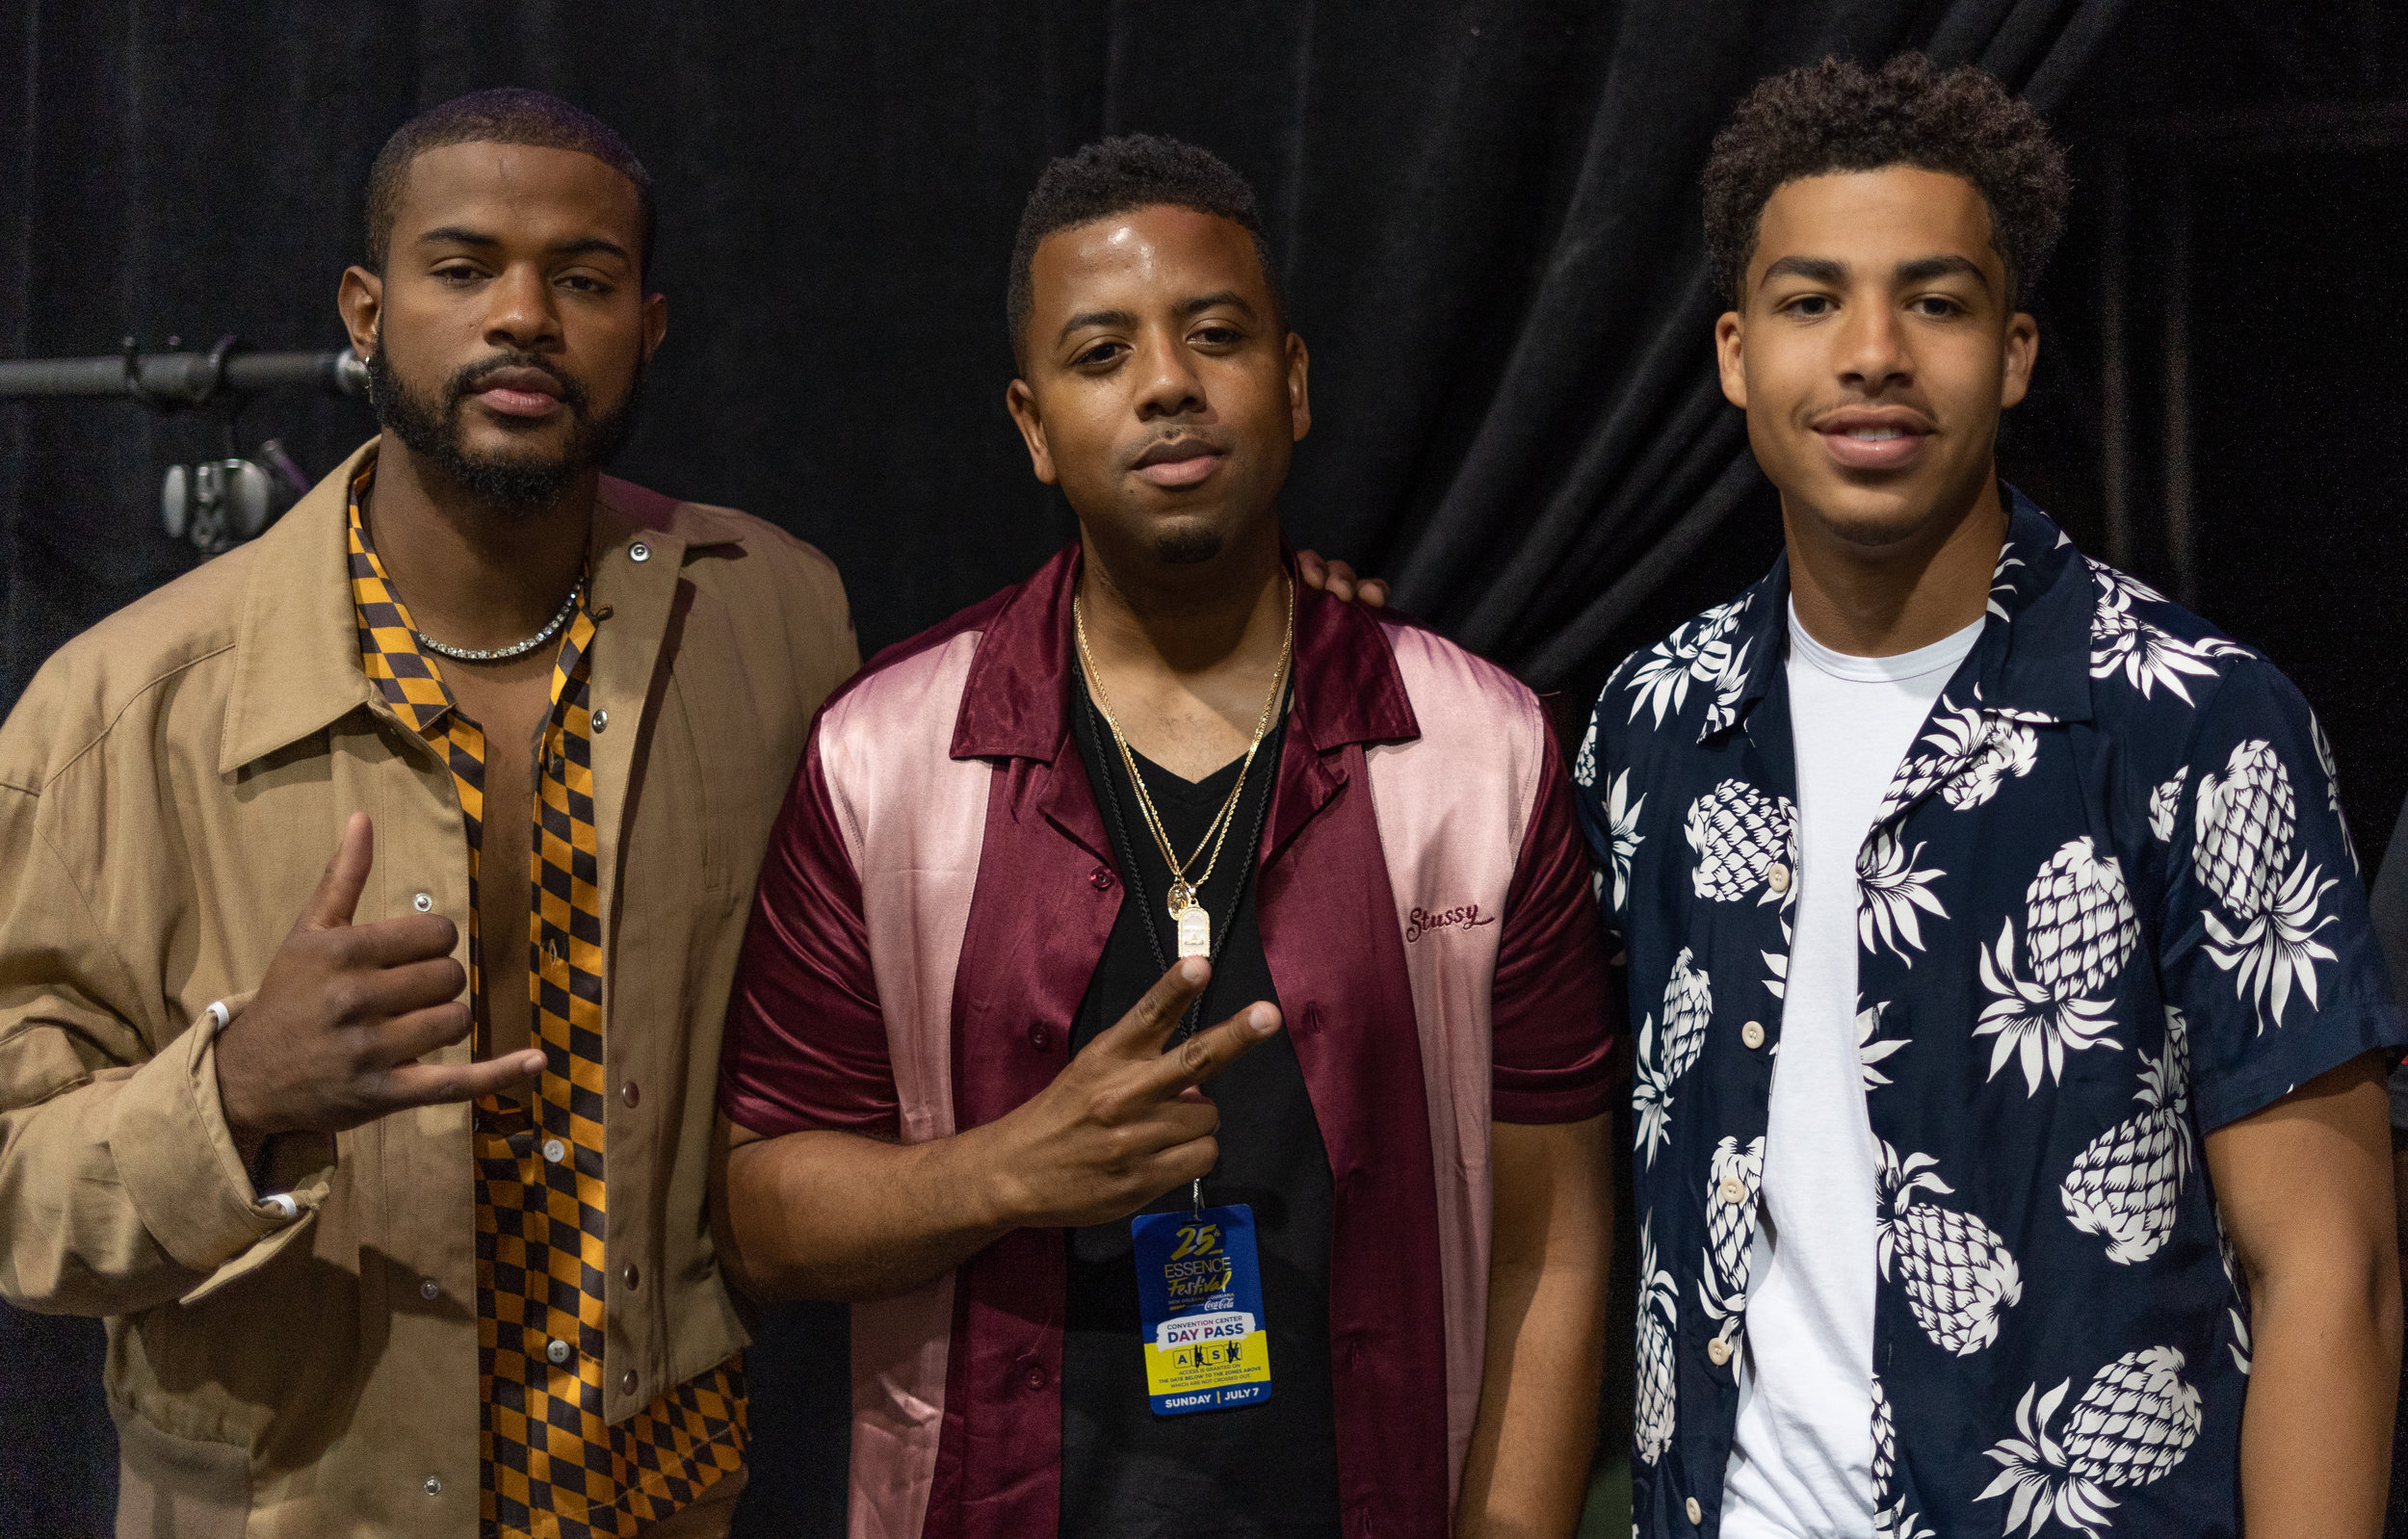 Justin Garner & the cast of Grownish (Trevor Jackson and Marcus Scribner)